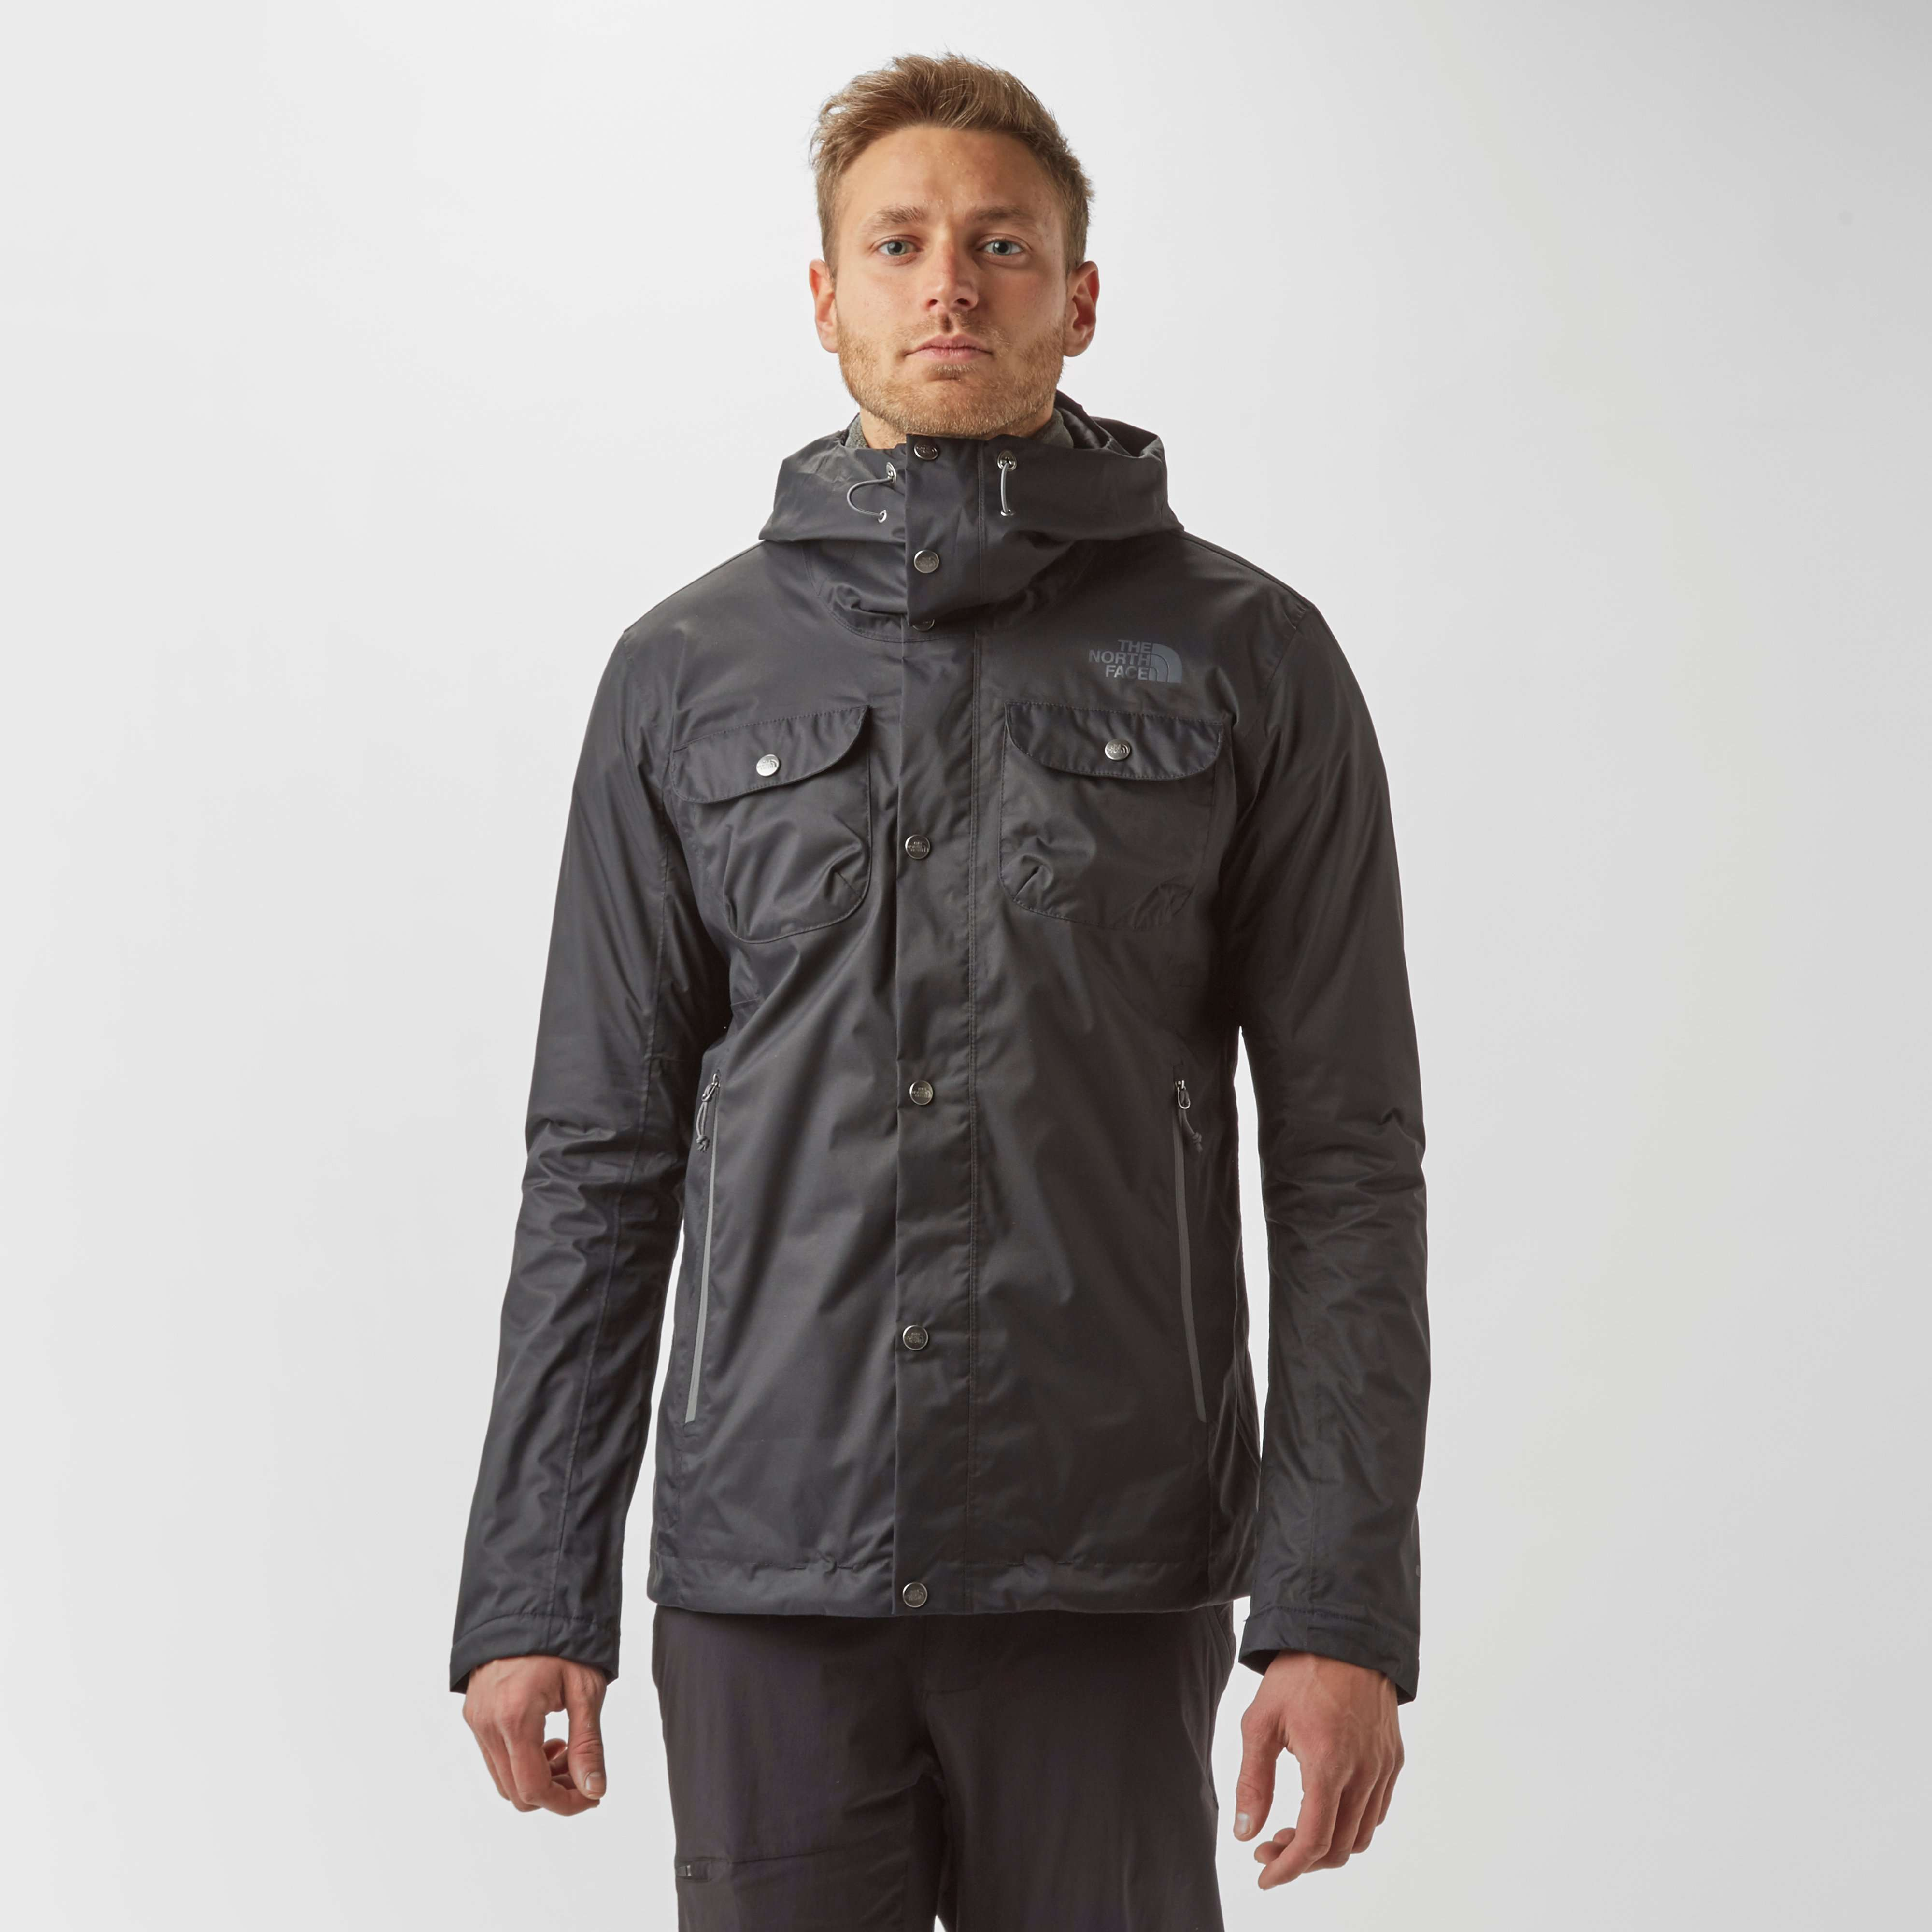 THE NORTH FACE Arrano Waterproof Jacket